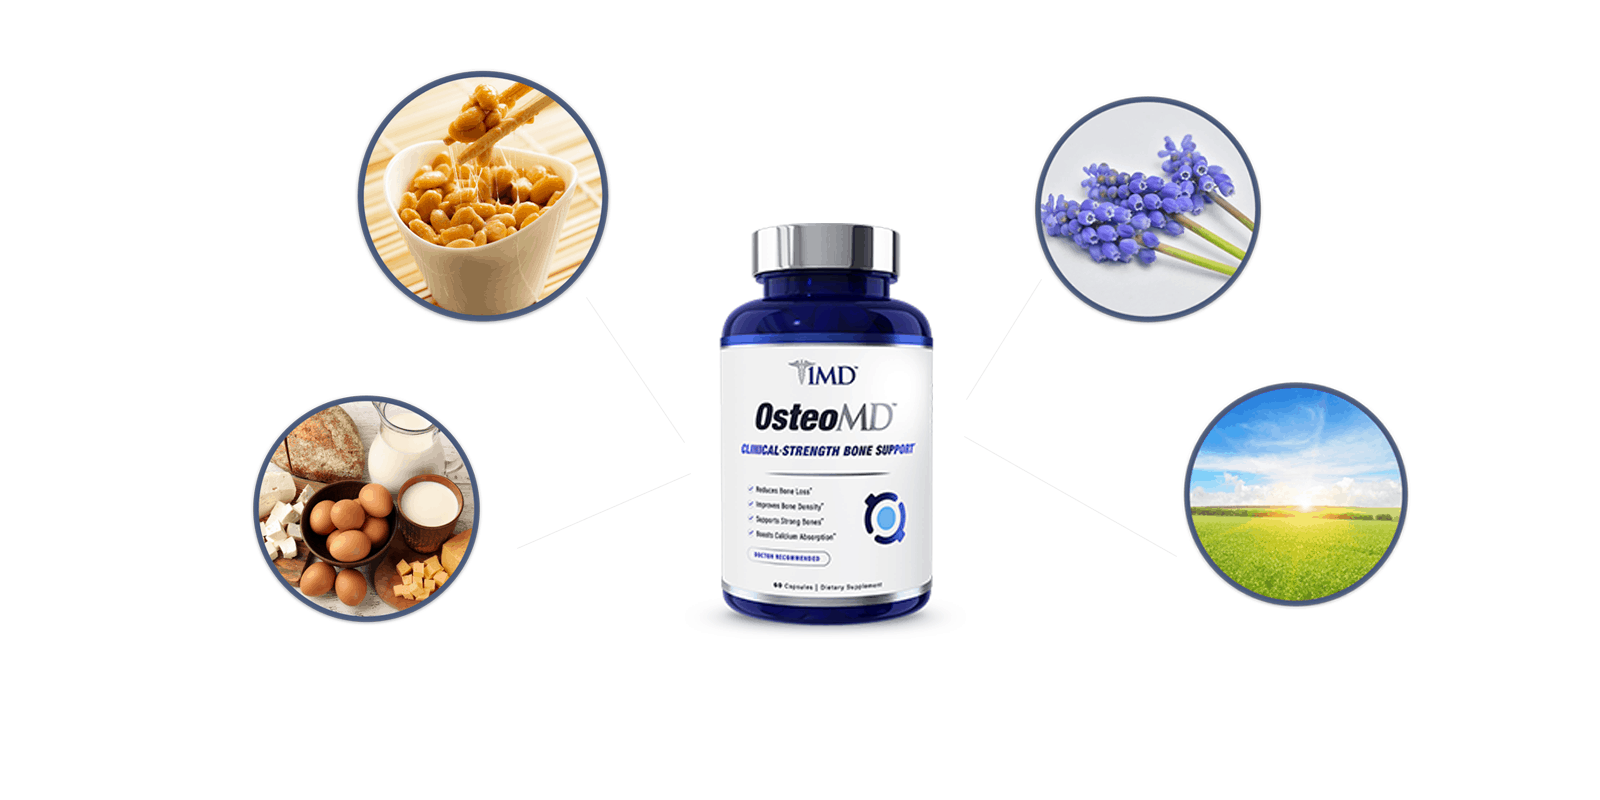 OsteoMD ingredients